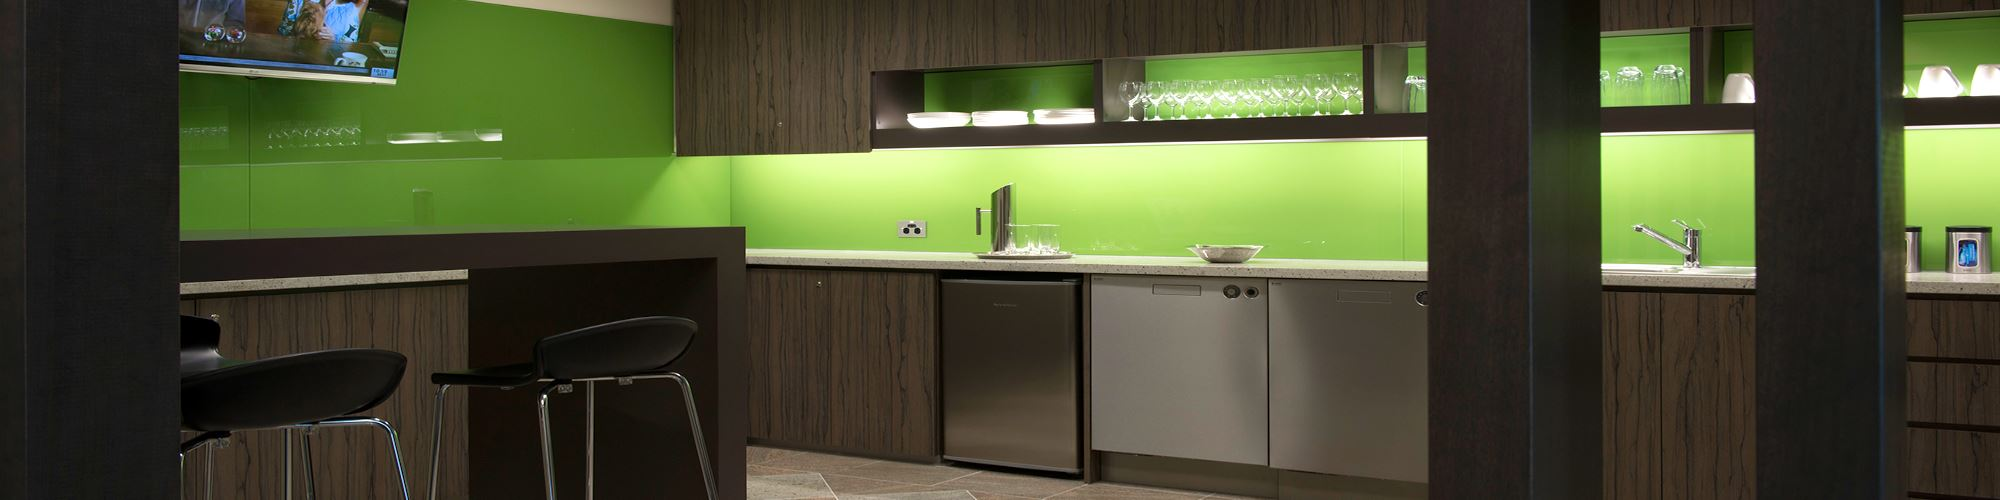 banner-deloitte-kitchen2.jpg